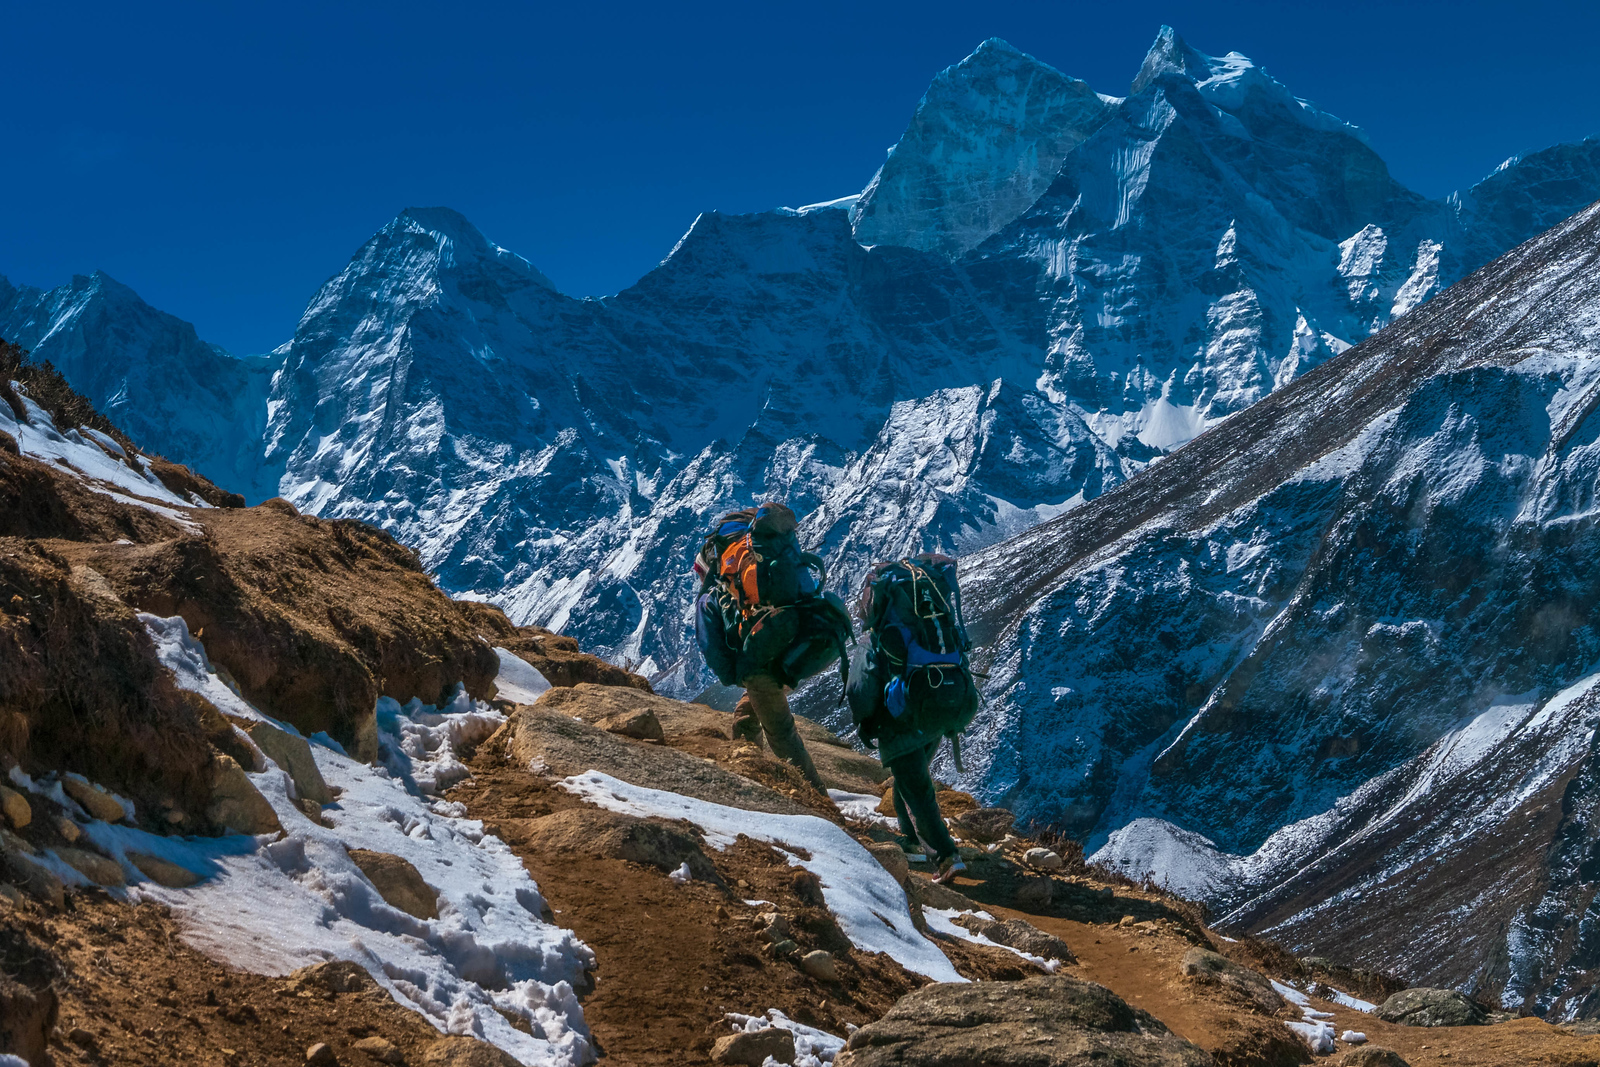 Packing everest base camp